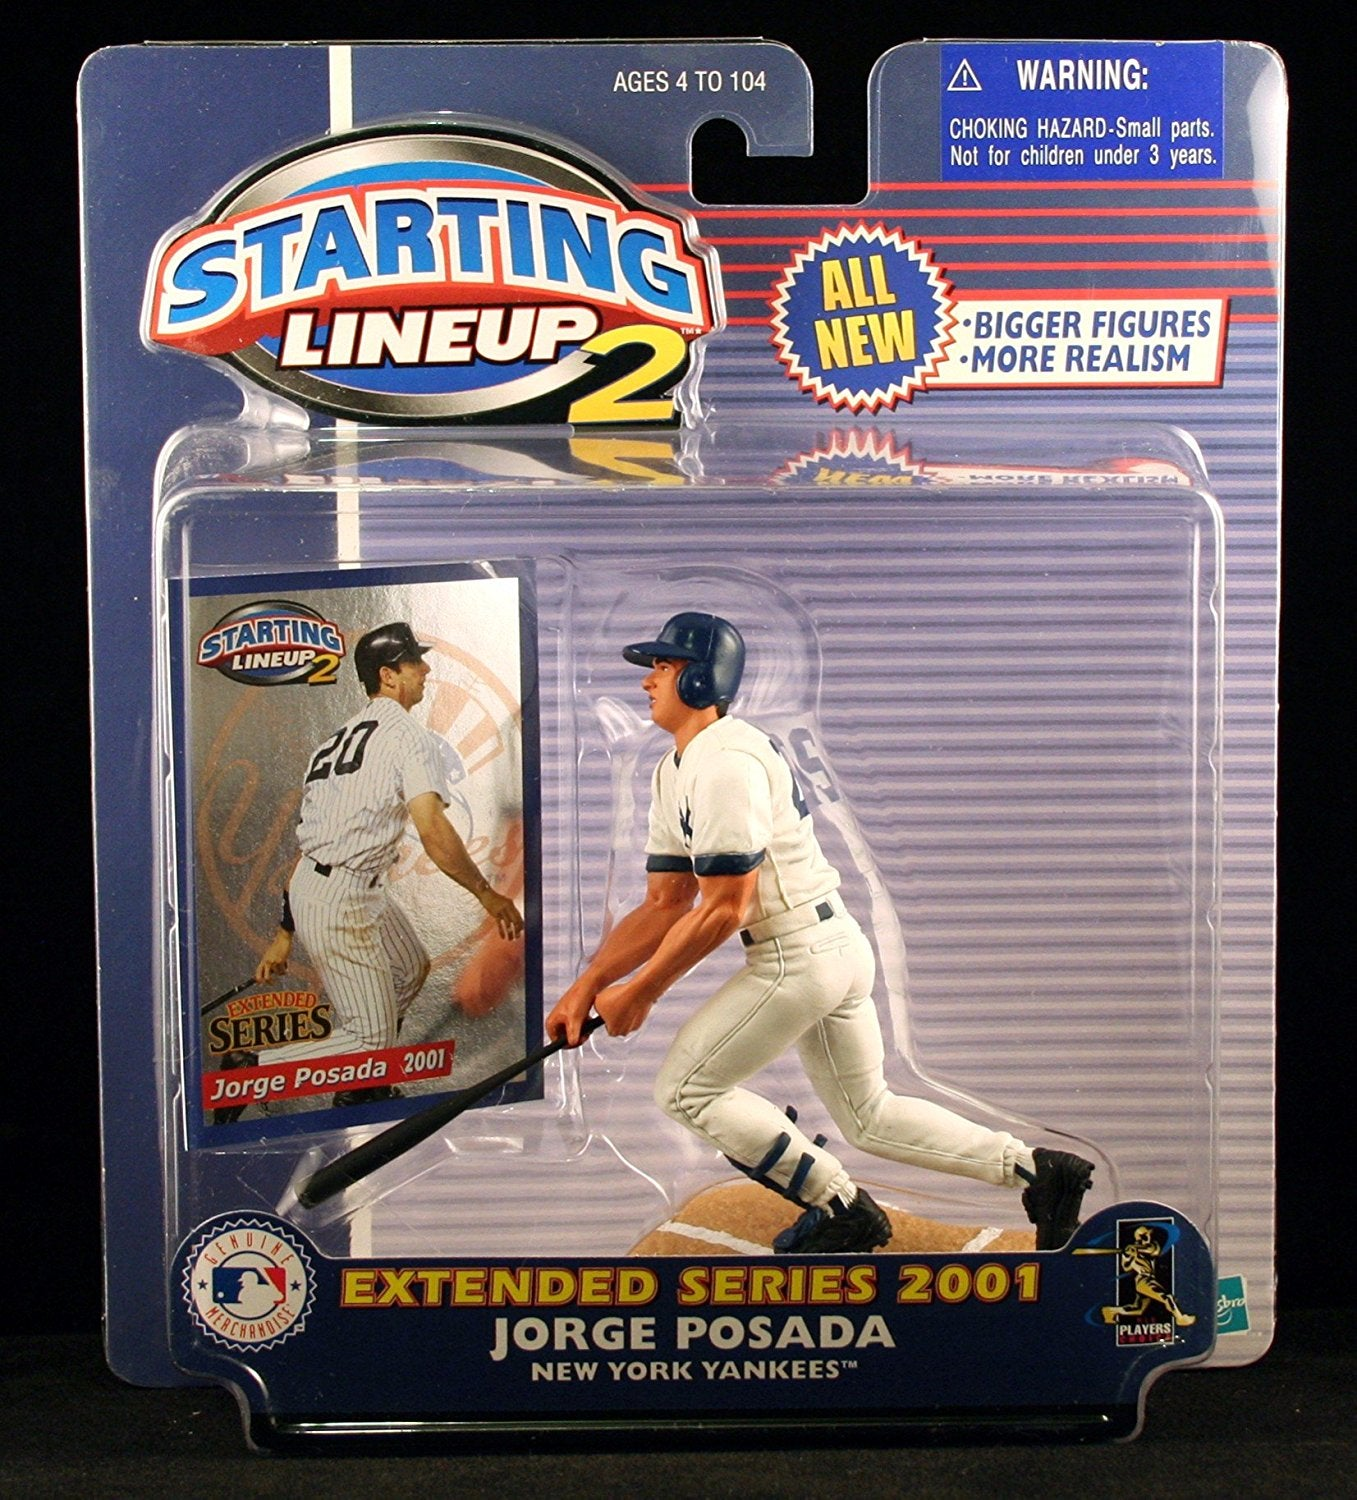 JORGE POSADA / NEW YORK YANKEES 2001 MLB Starting Lineup 2 EXTENDED SERIES Action Figure & Exclusive Trading Card